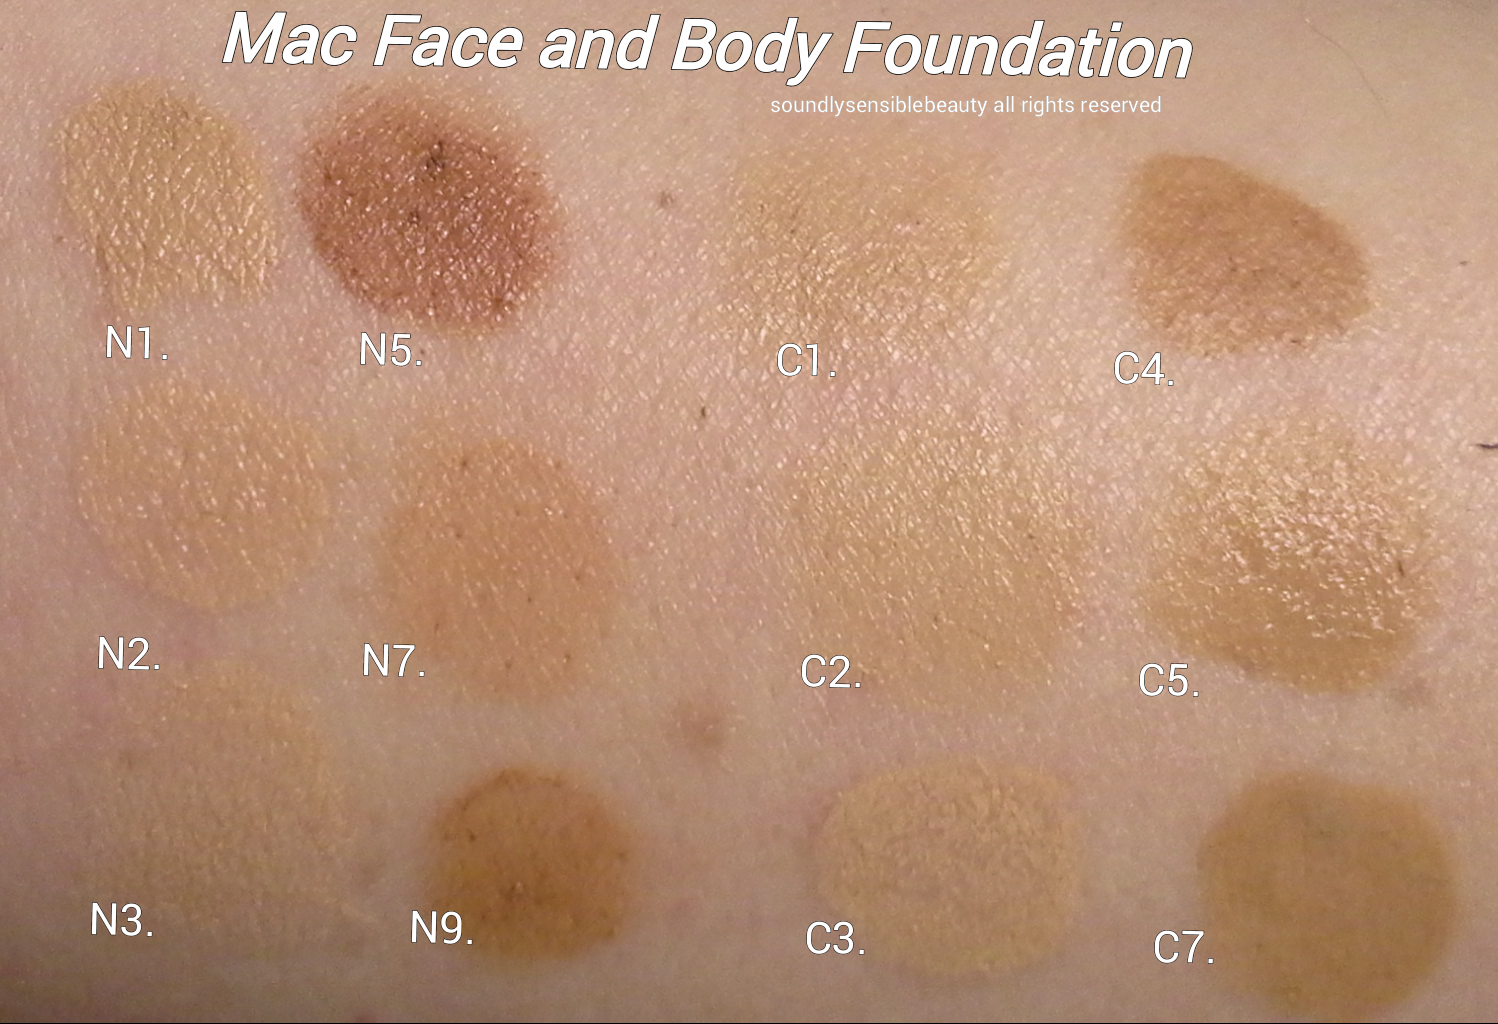 Mac Face Amp Body Foundation Review Amp Swatches Of Shades